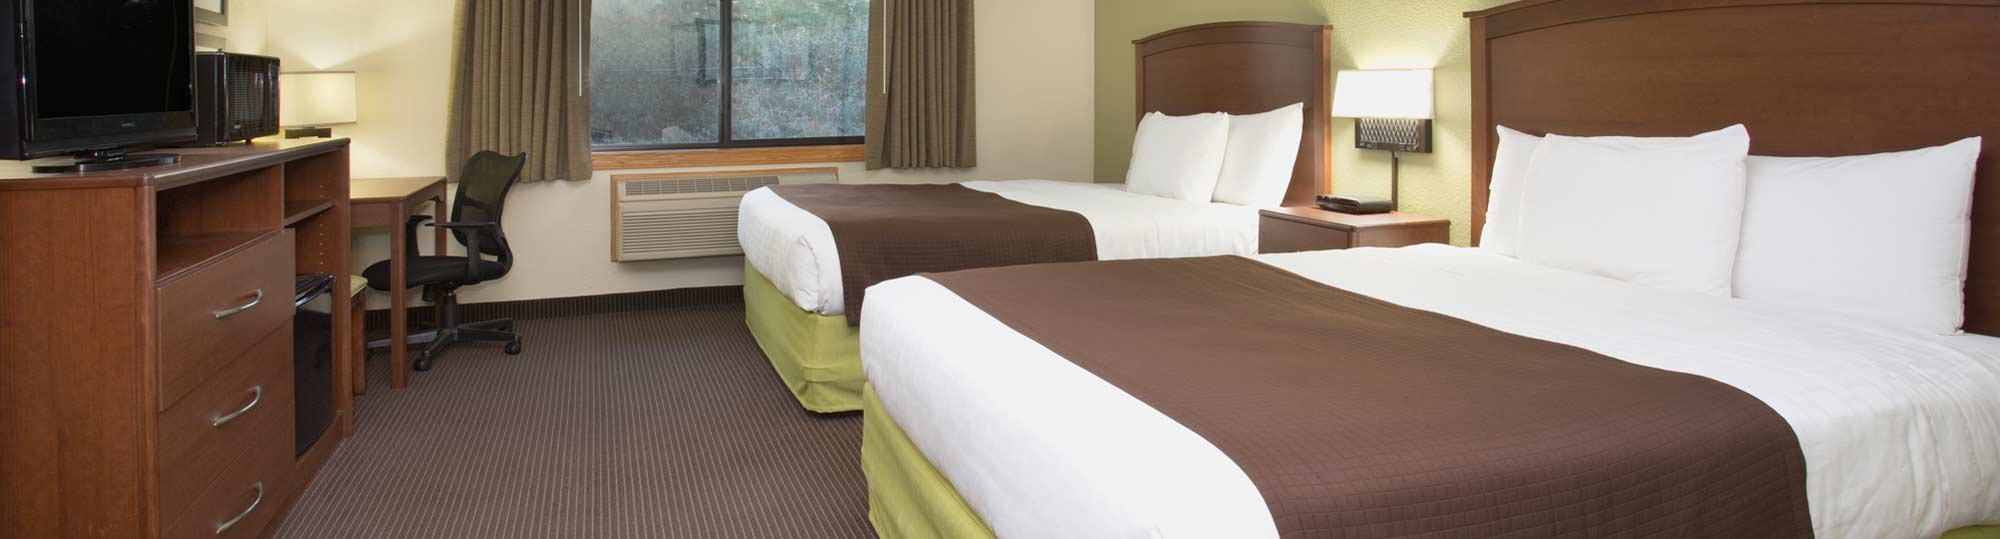 Cobblestone Hotel and Suites Wisconsin Rapids